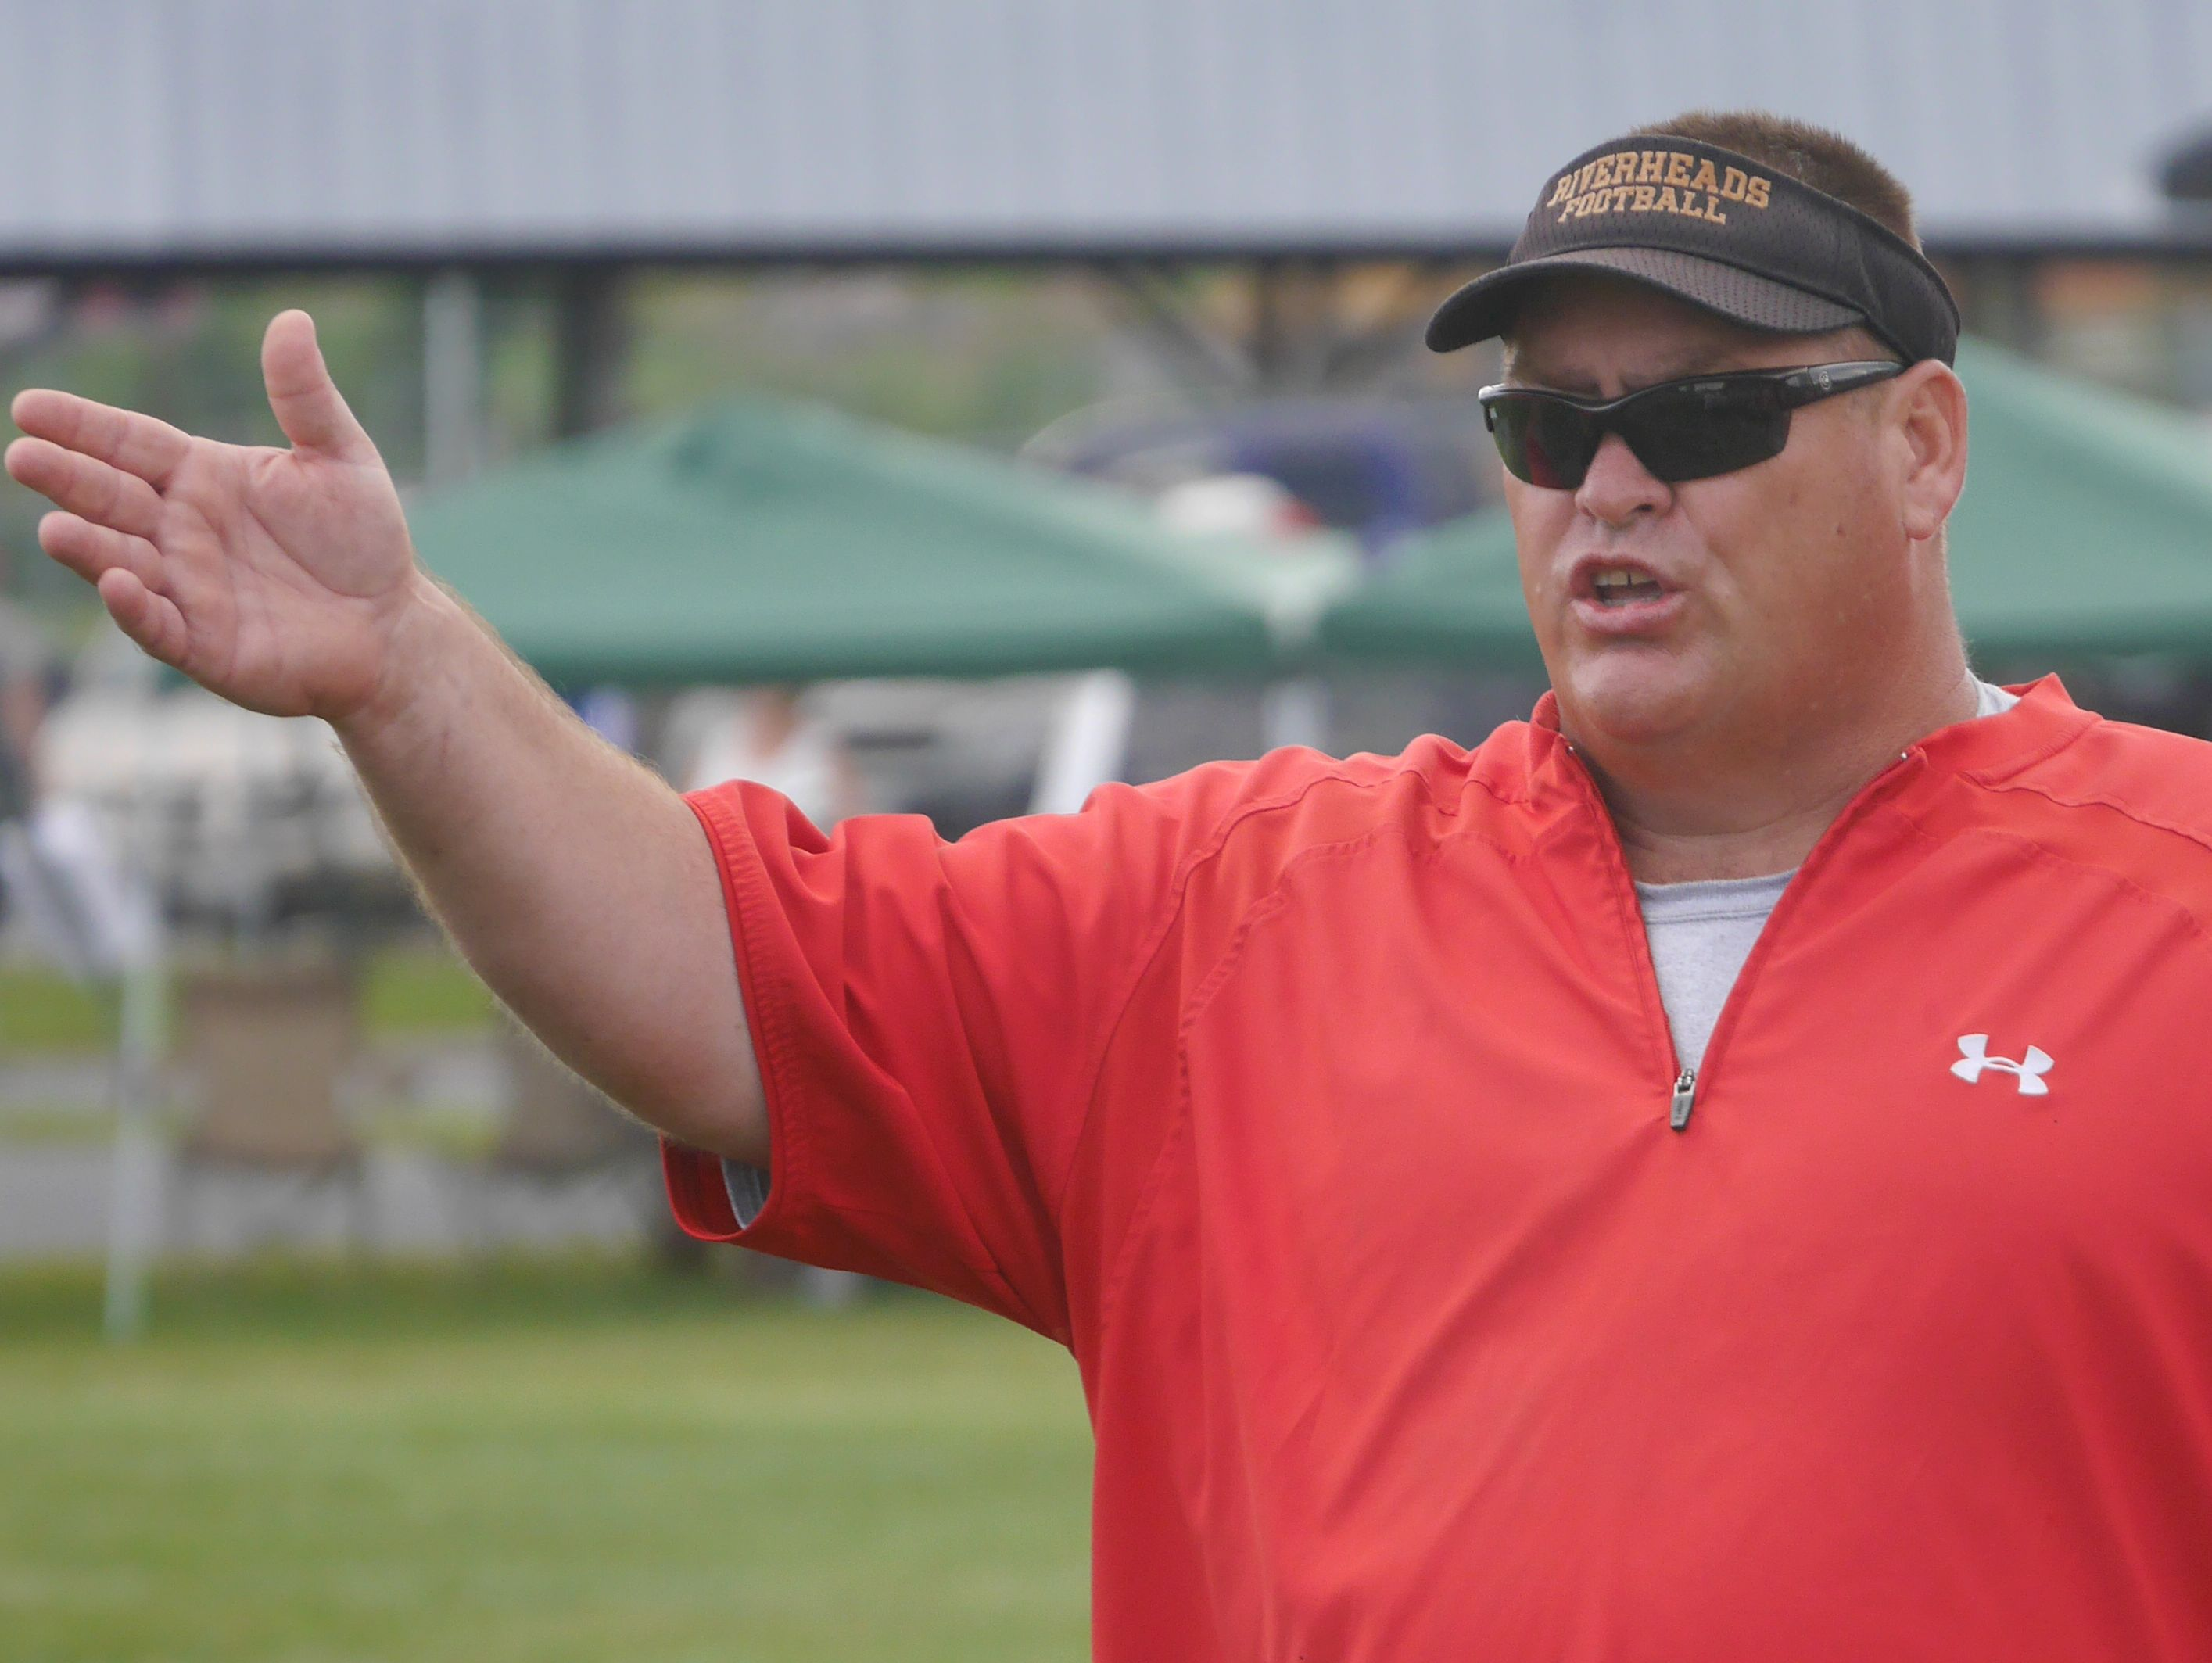 Riverheads High Sshool football head coach Robert Casto during their scrimmage against Appomattox High School in the Riverheads High School 2016 football jamboree on Aug. 20, 2016.